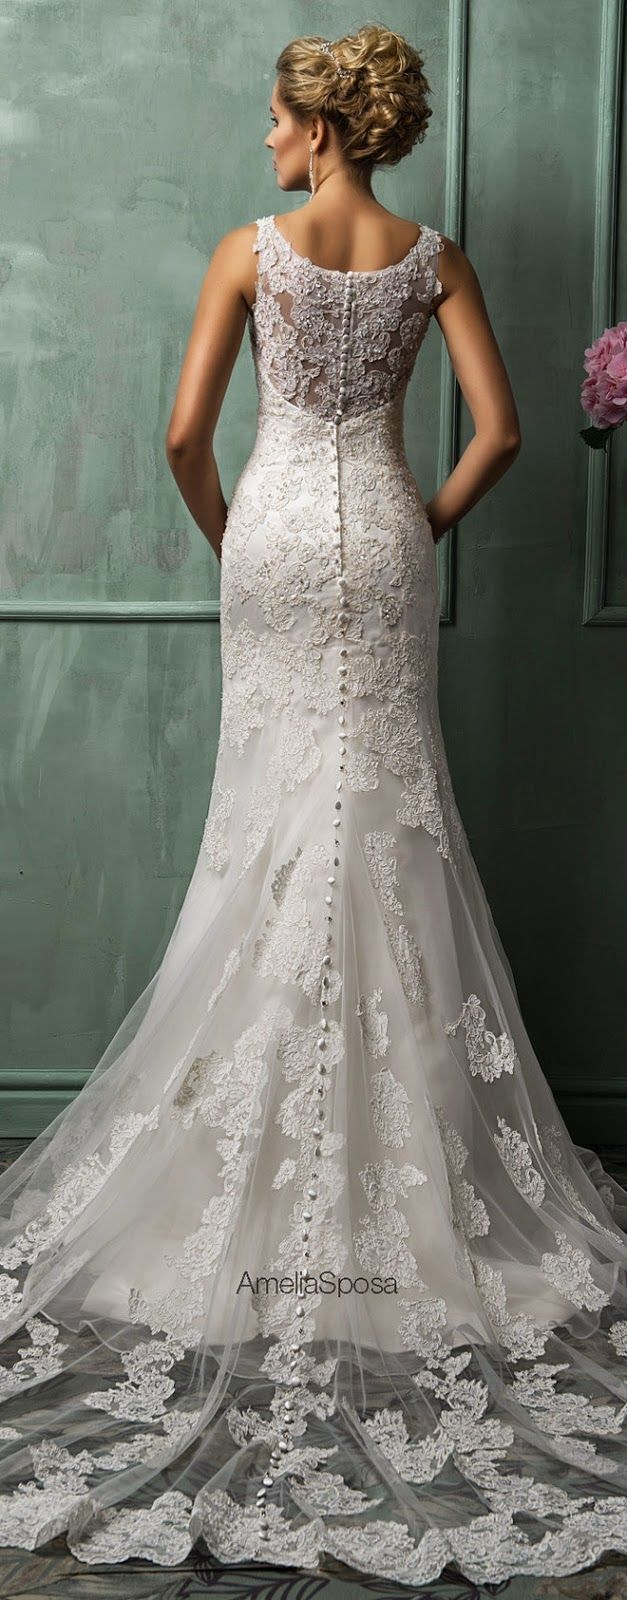 Amelia Sposa 2014 Wedding Dresses - Belle the Magazine . The Wedding Blog For The Sophisticated Bride Yes.